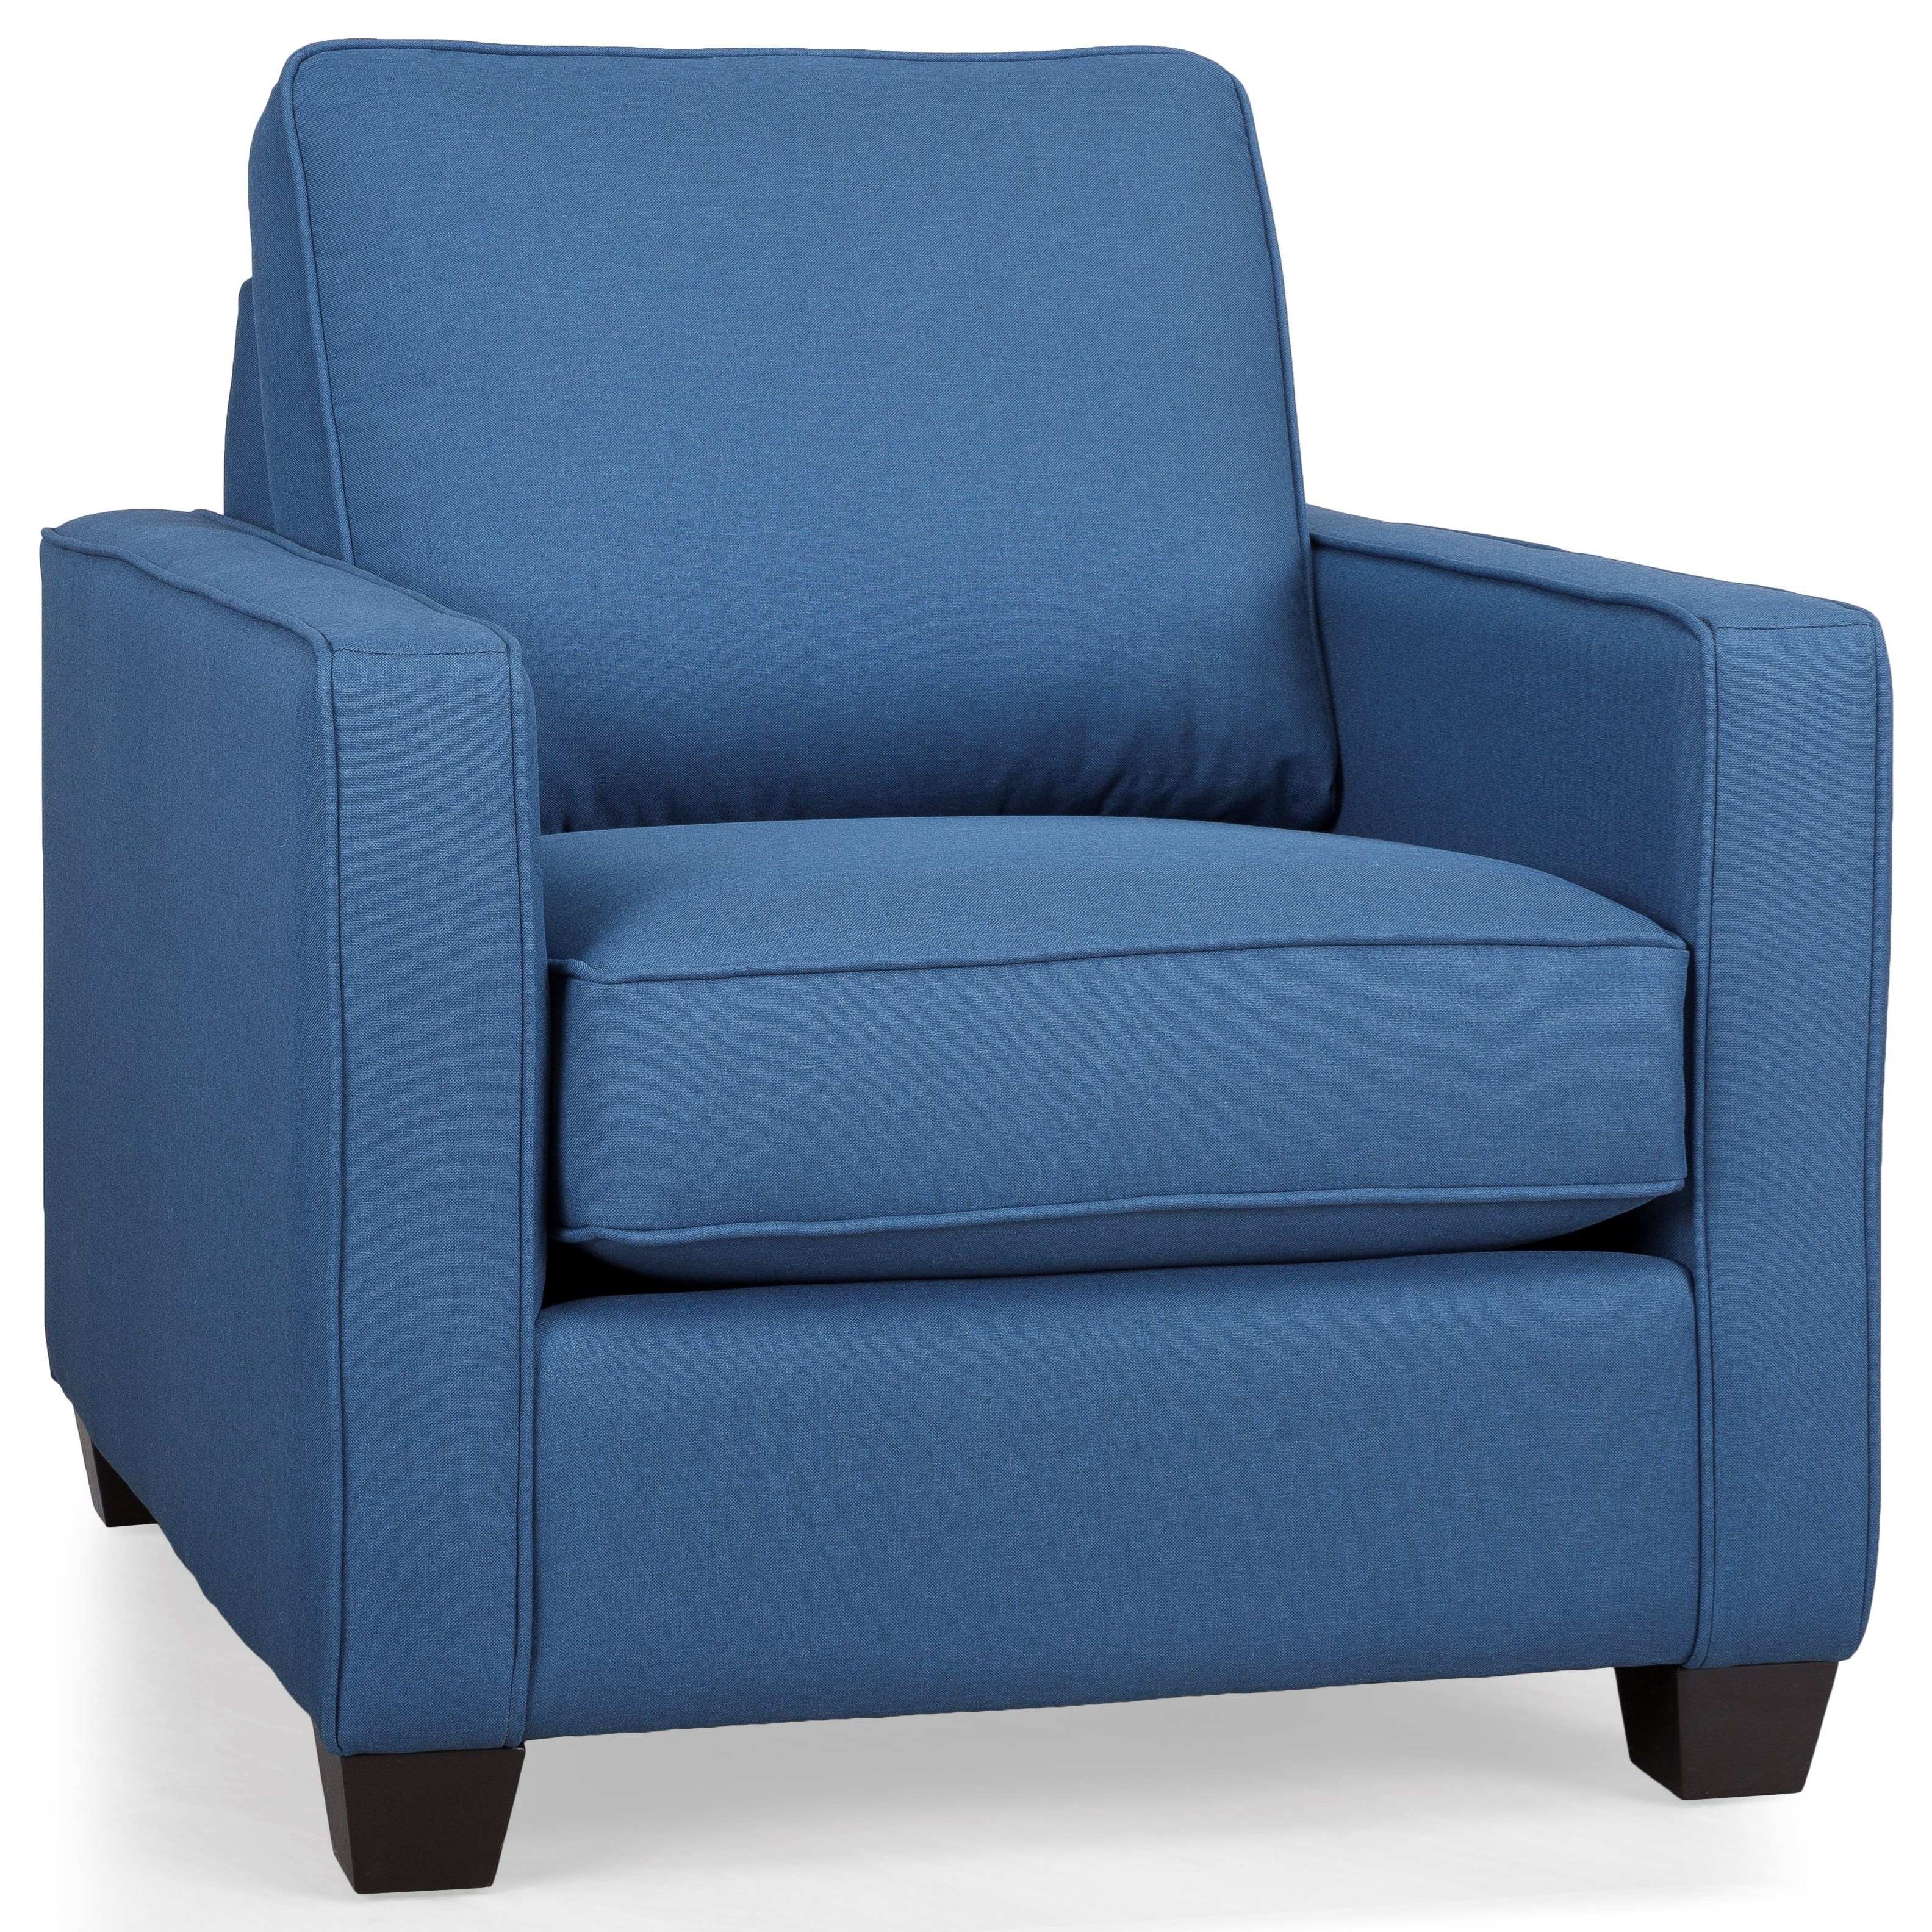 2855 Upholstered Chair by Decor-Rest at Upper Room Home Furnishings